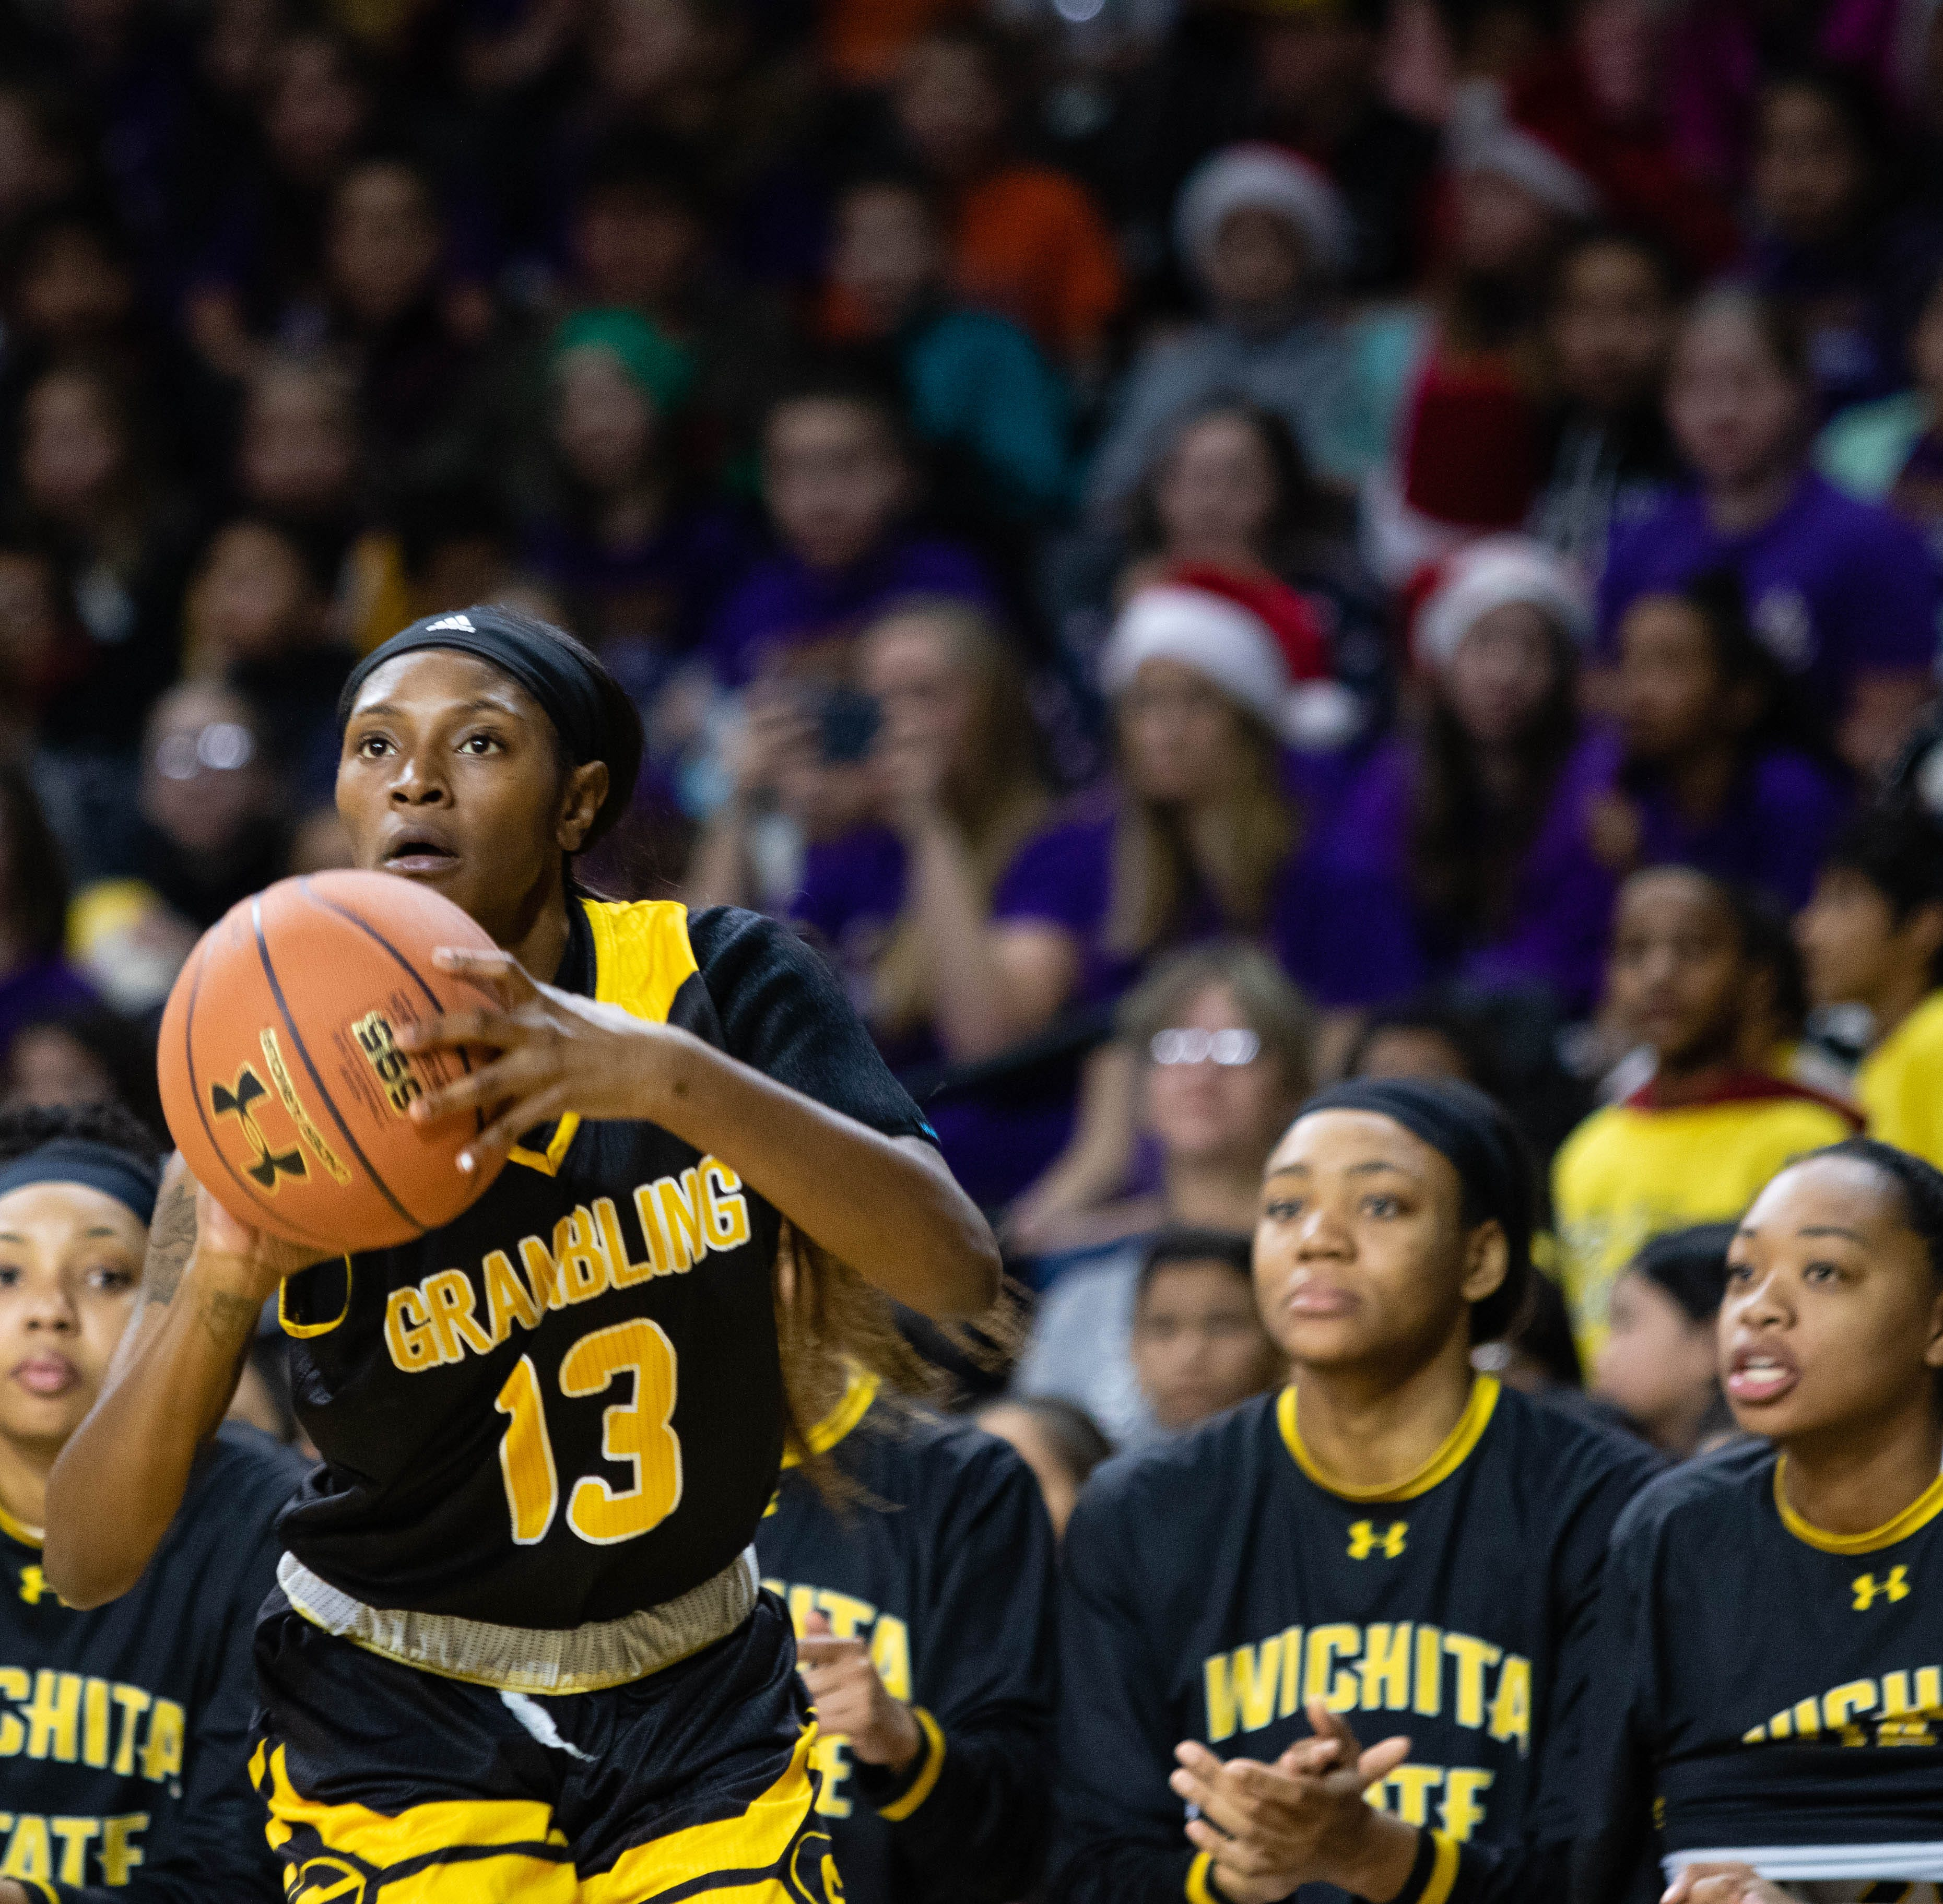 Grambling State women fall short at Wichita State